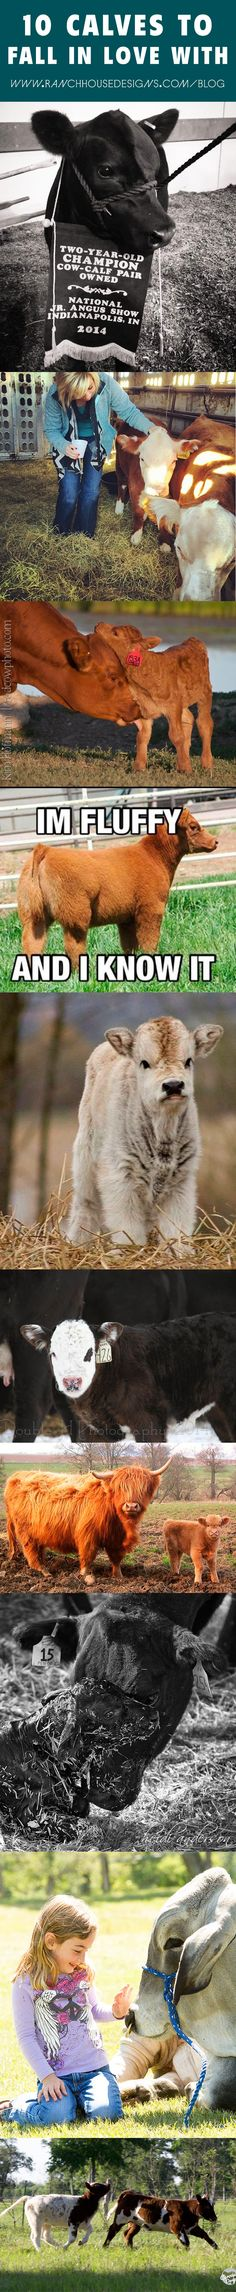 10 Calves to Fall in Love With - Ranch House Designs Blog